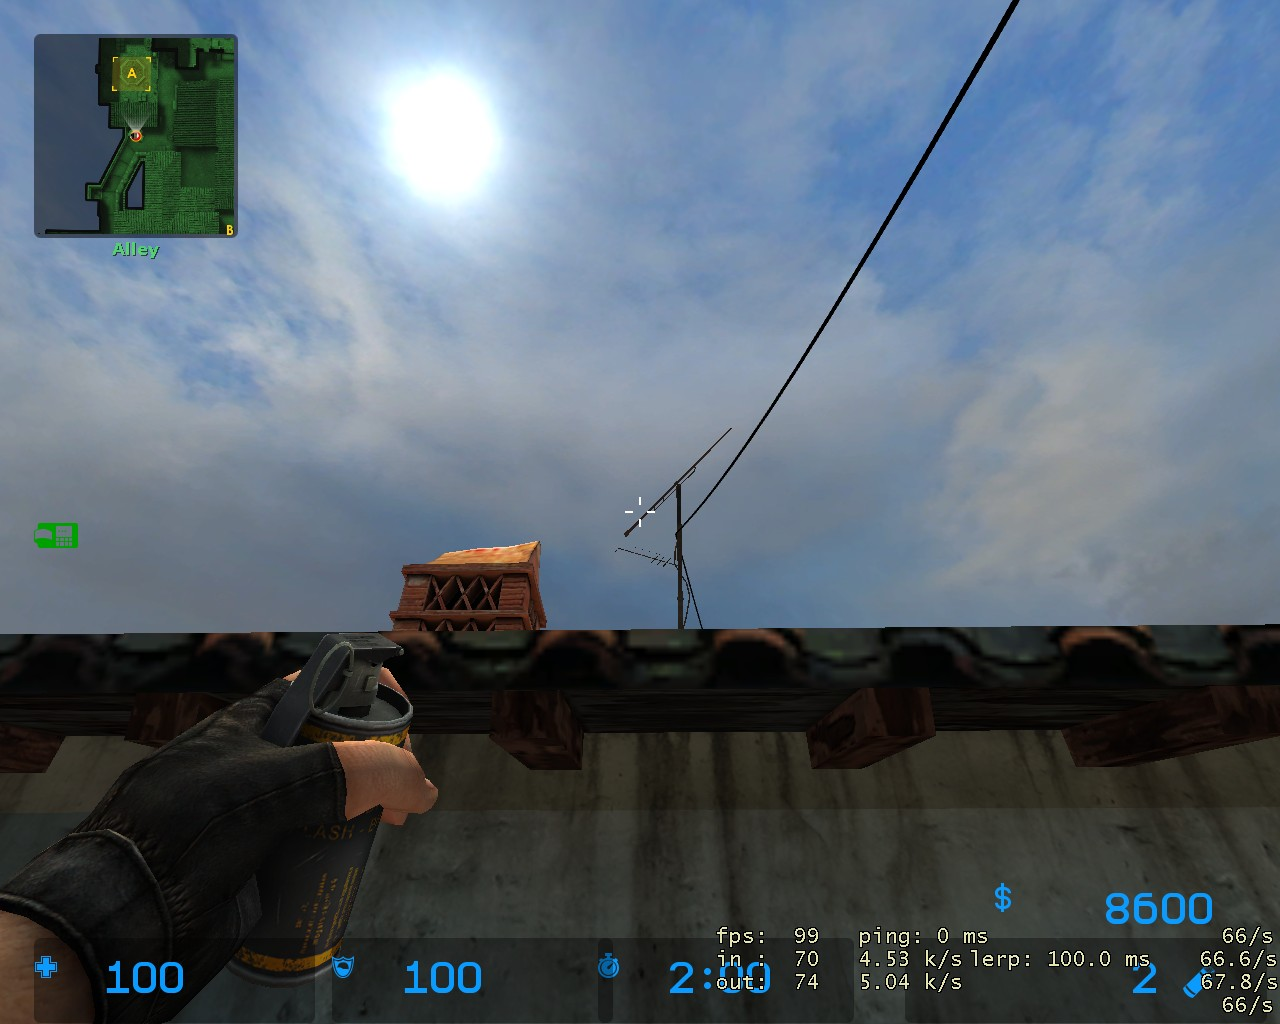 Ian's friend prime-de_inferno-banana-car-jump-jpg